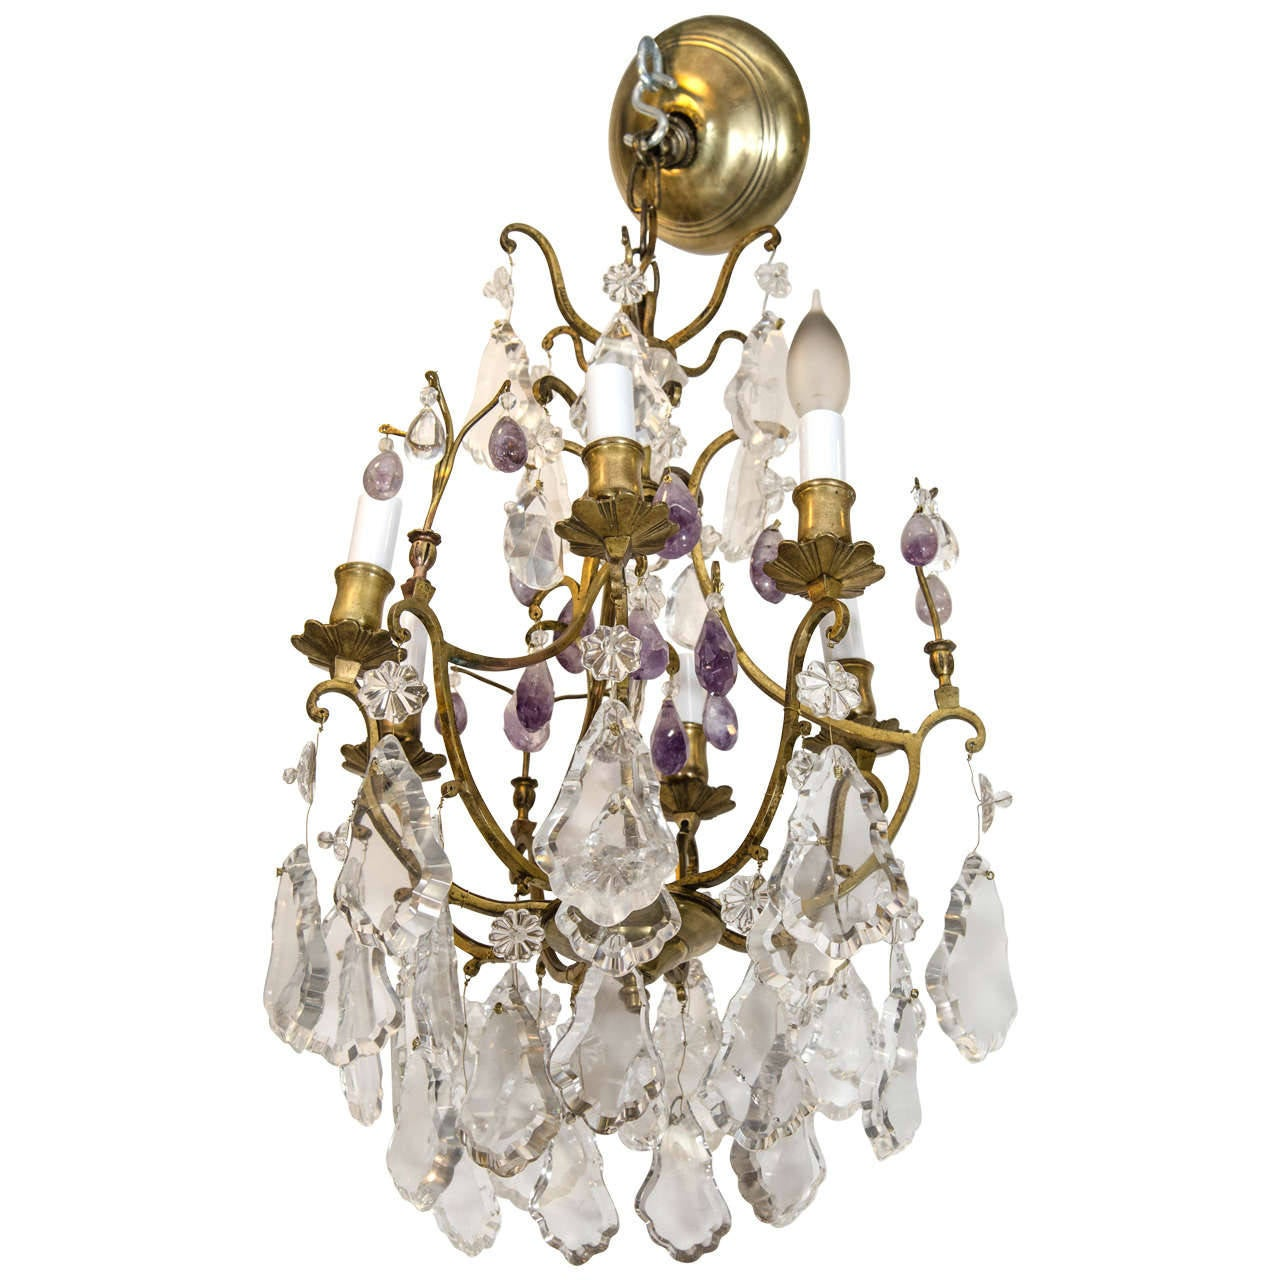 Gilded Bronze and Rock Crystal Chandelier with Purple Amethyst after Bagues - Rock Crystal Chandeliers And Pendants - 194 For Sale At 1stdibs